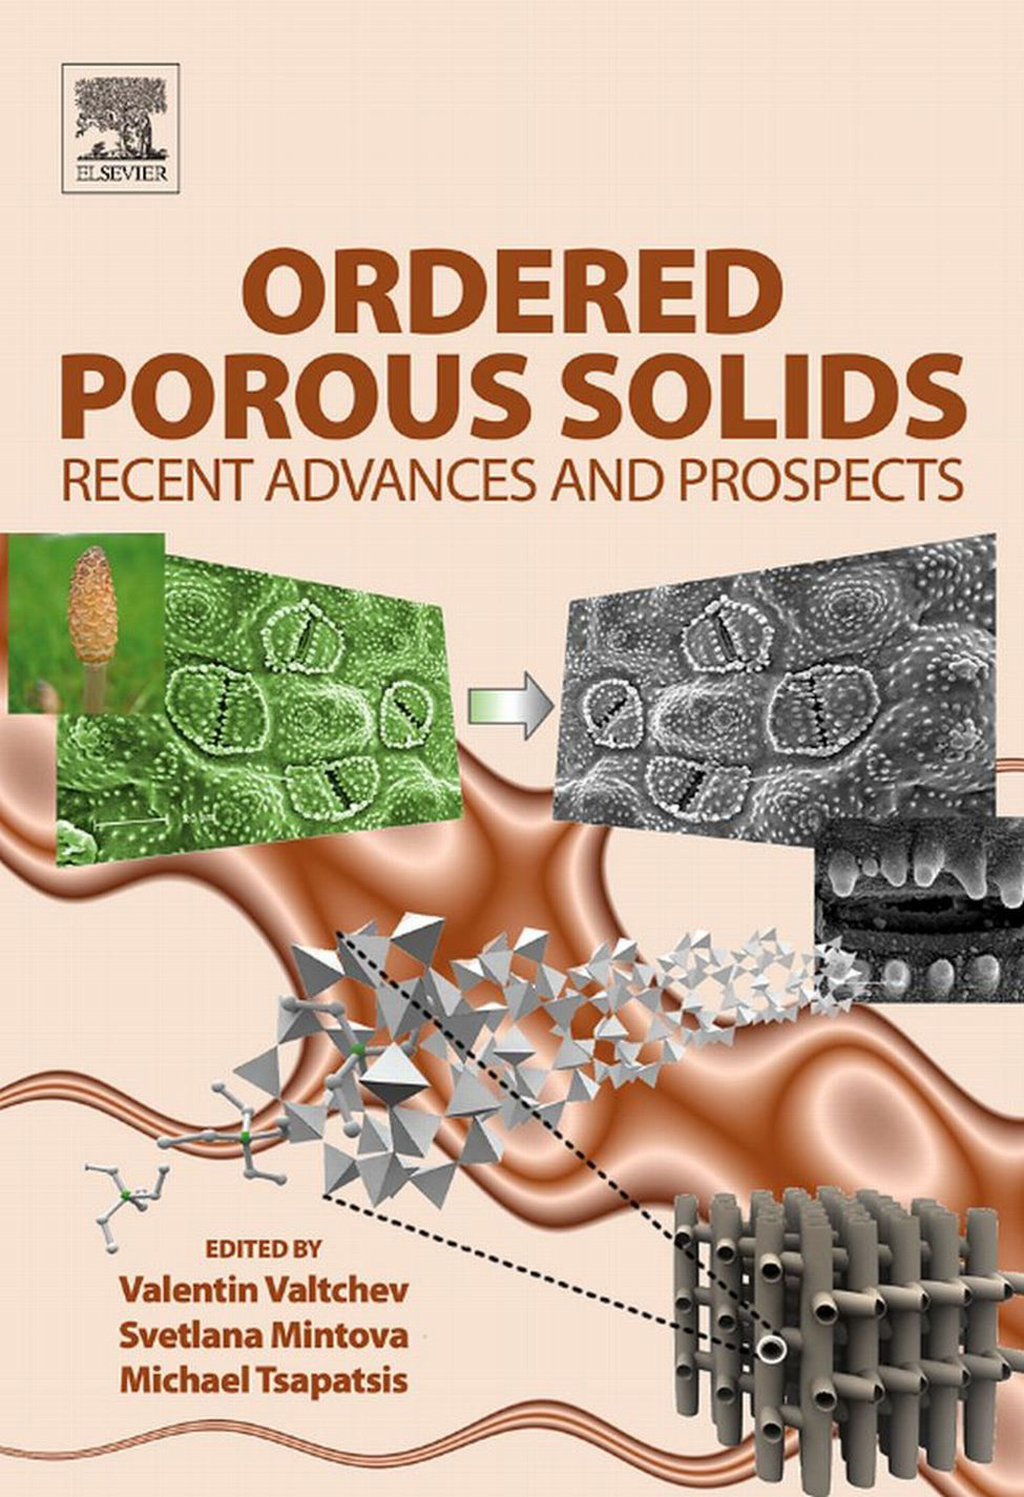 Ordered Porous Solids Recent Advances and Prospects